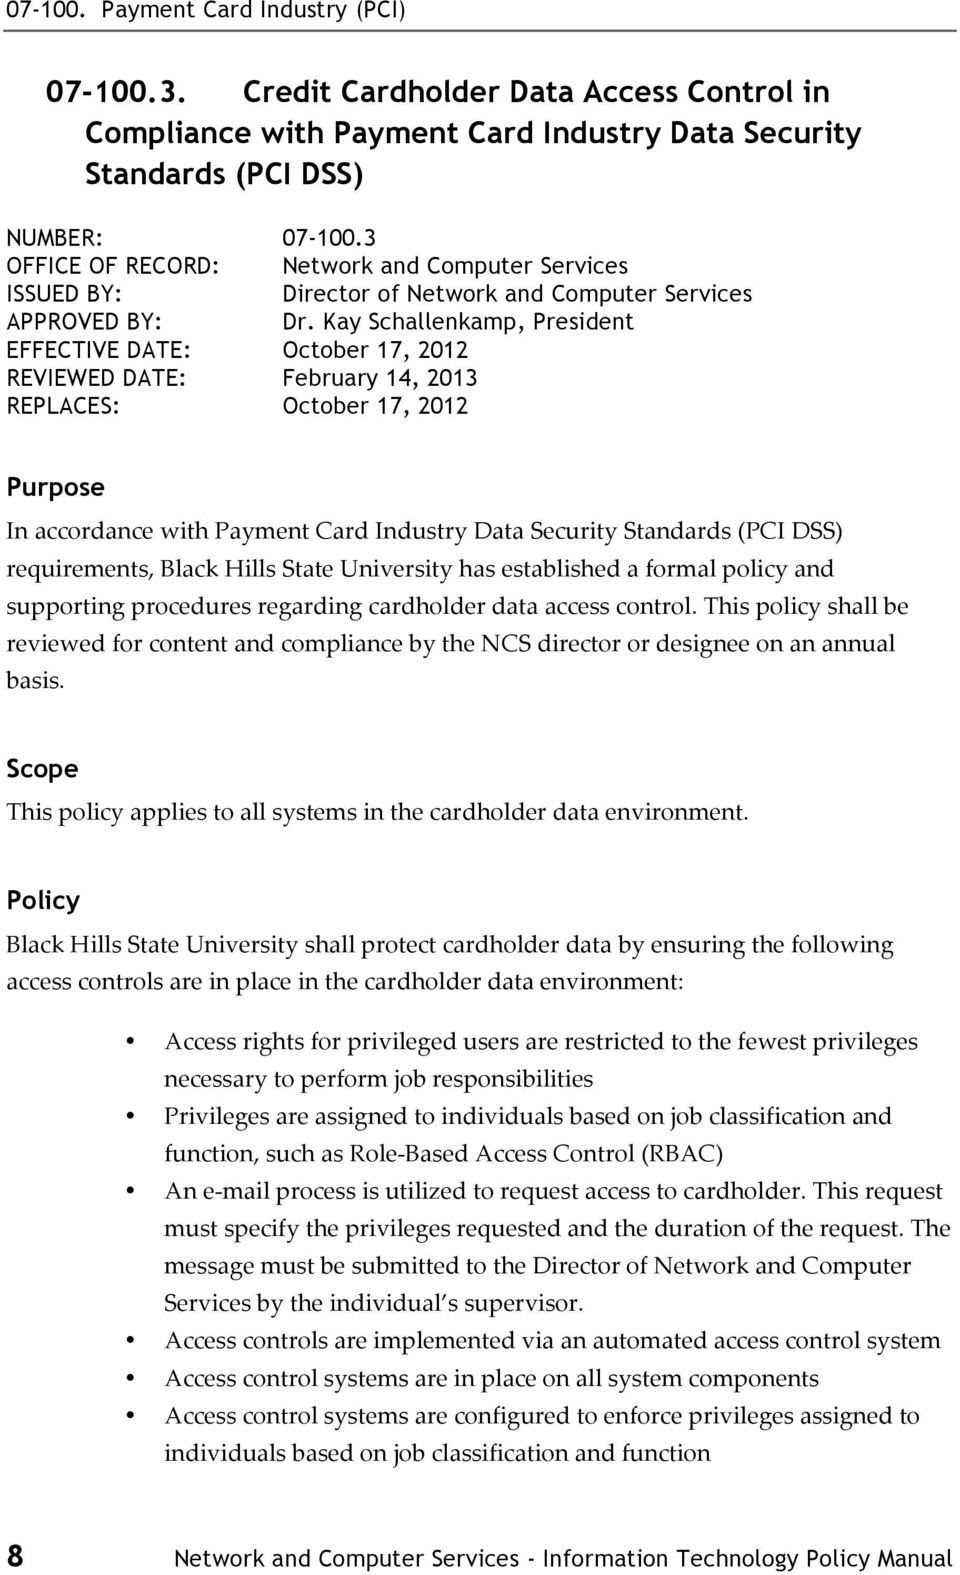 Kay Schallenkamp, President EFFECTIVE DATE: October 17, 2012 REVIEWED DATE: February 14, 2013 REPLACES: October 17, 2012 Purpose In accordance with Payment Card Industry Data Security Standards (PCI